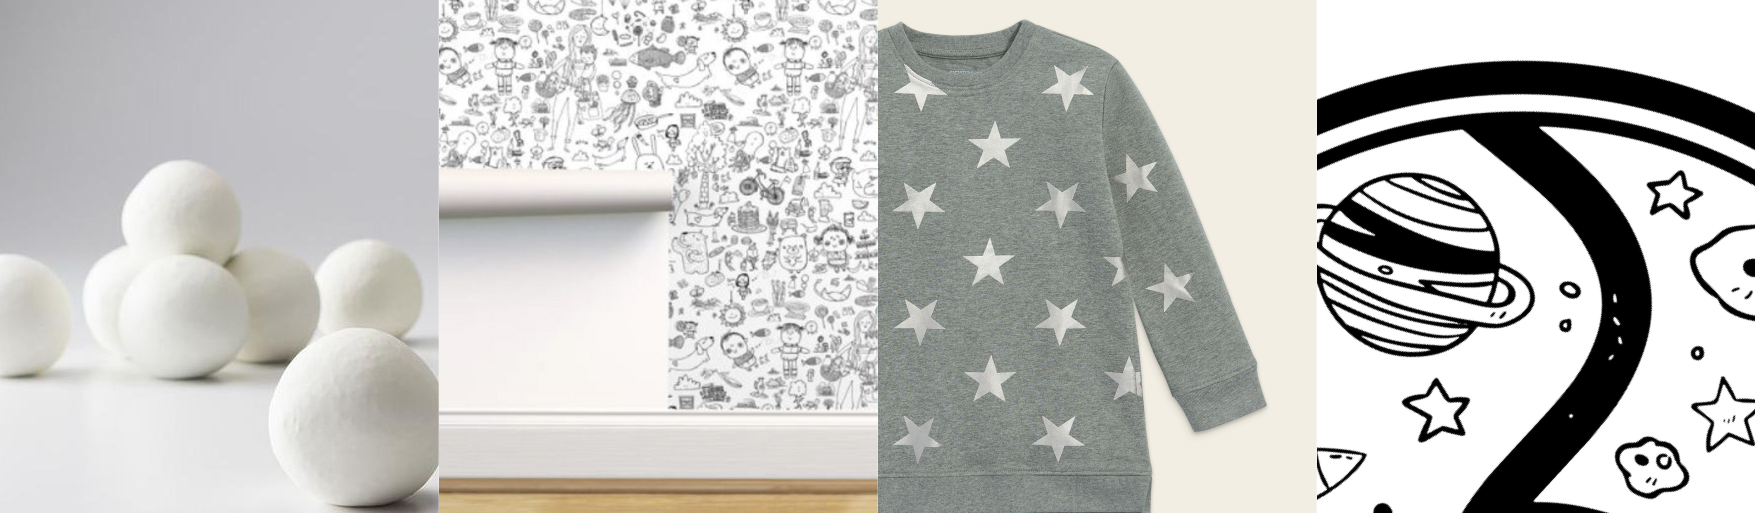 white play snowballs, black and white illustrated wallpaper, gray sweater with silver stars, black and white space playmat